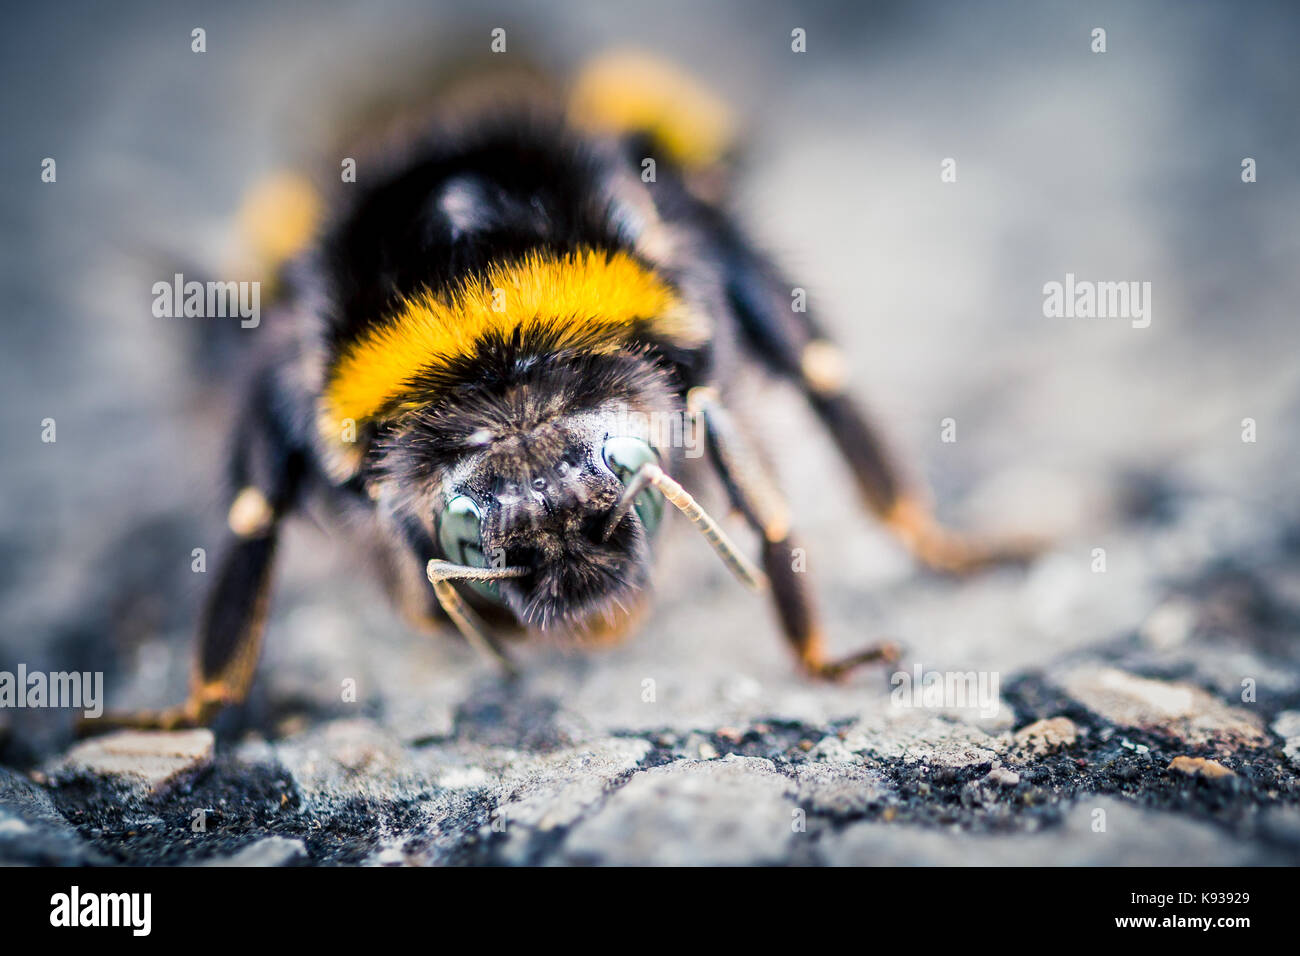 Macro Closeup of a Bee at a Nature Reserve - Stock Image